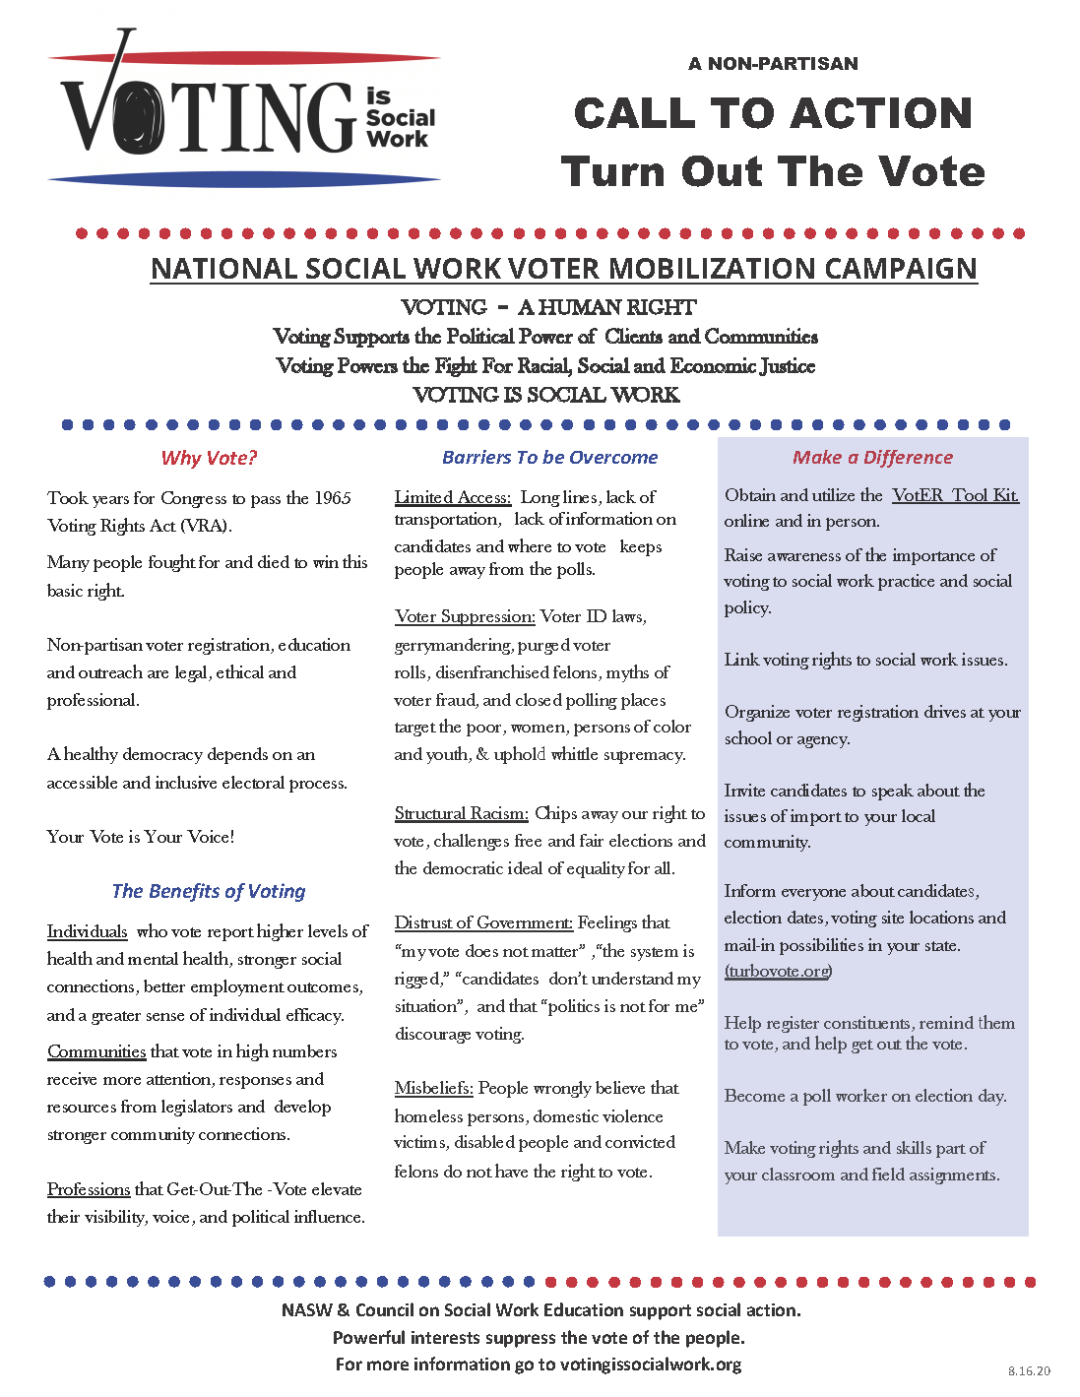 Voting Is Social Work-Flyer final 8-17-2020_Page_1